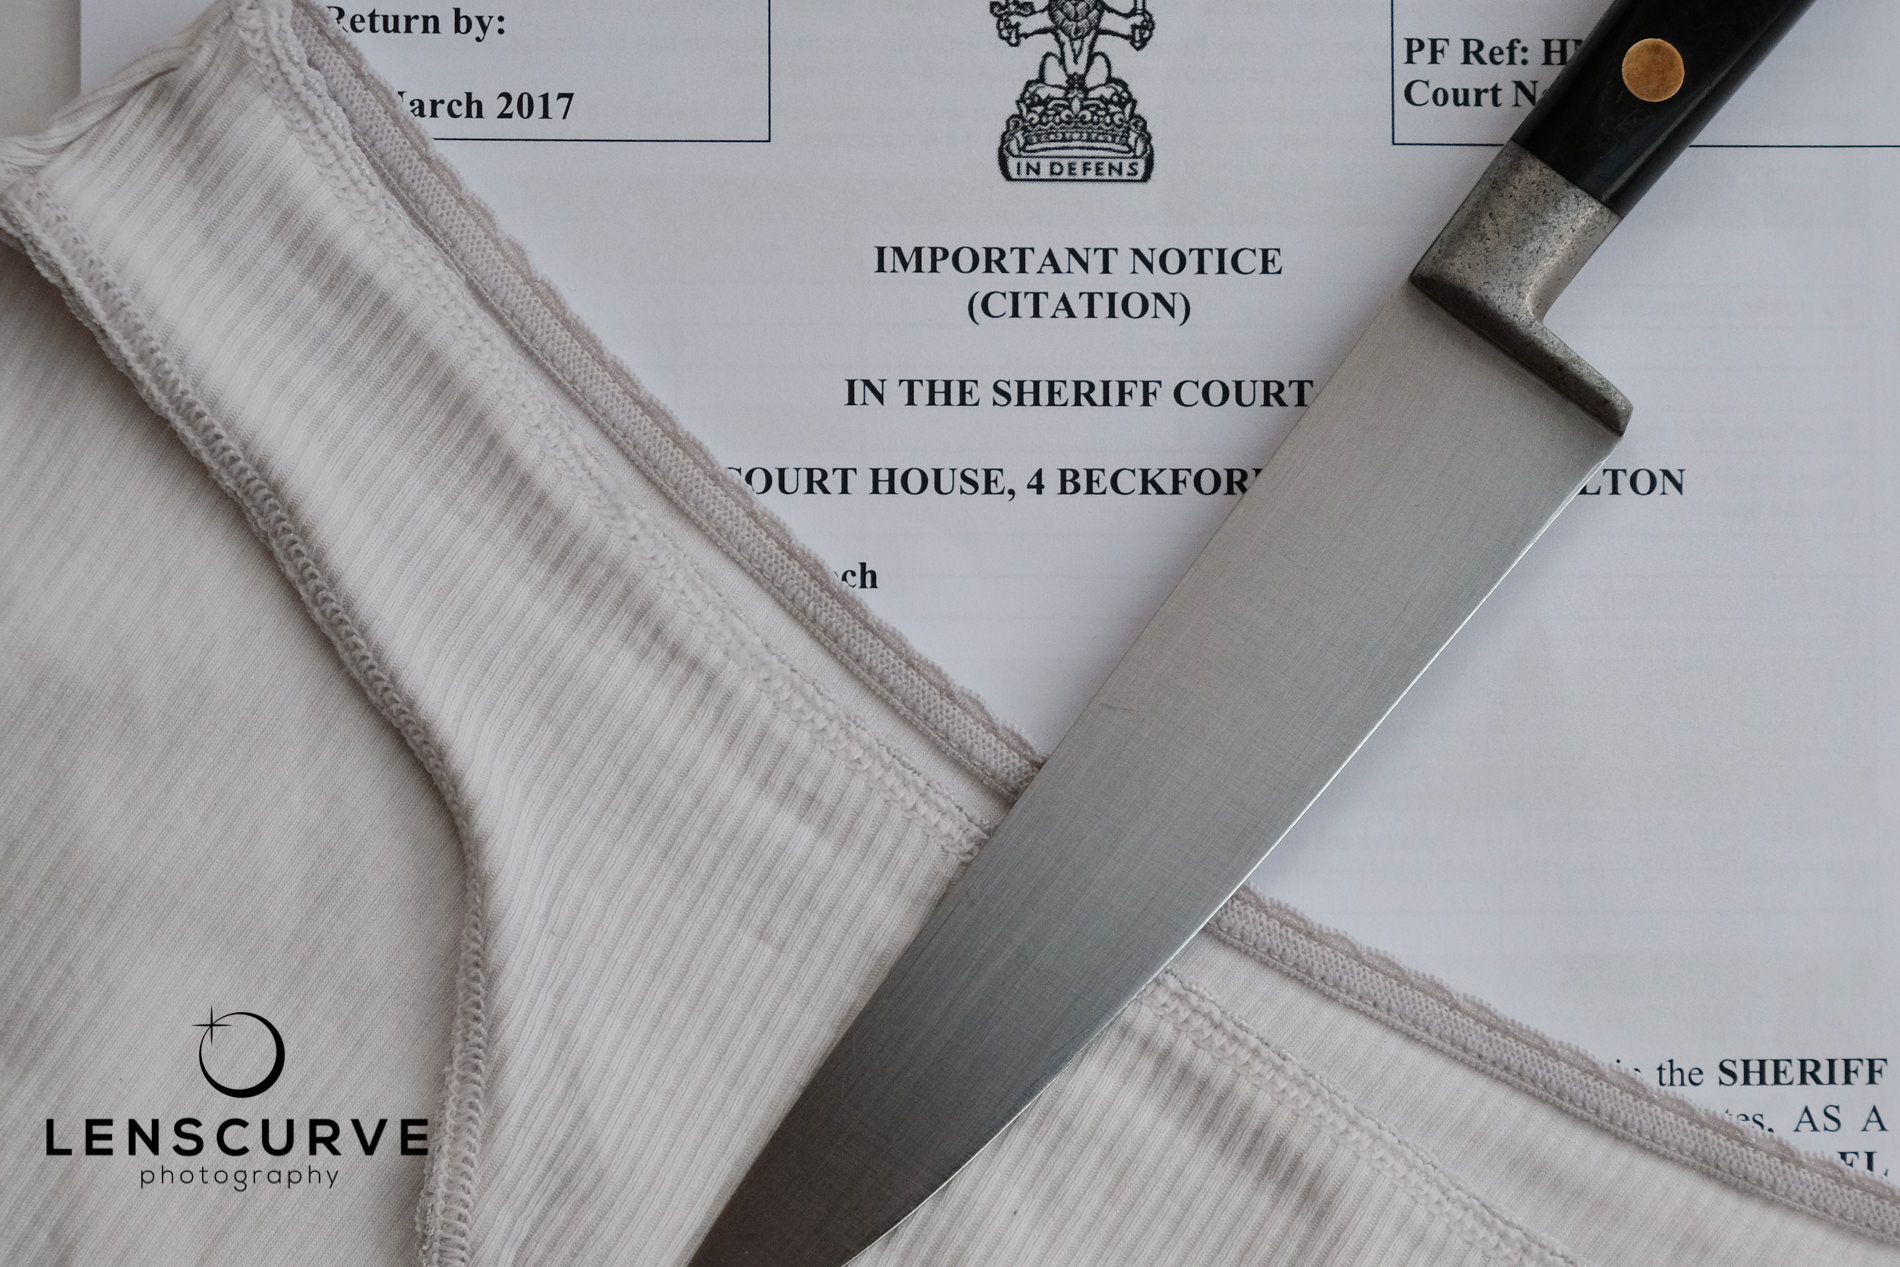 Photograph of Underpants, Knives and Court Citations Representing The Life of A Forensic Biologist